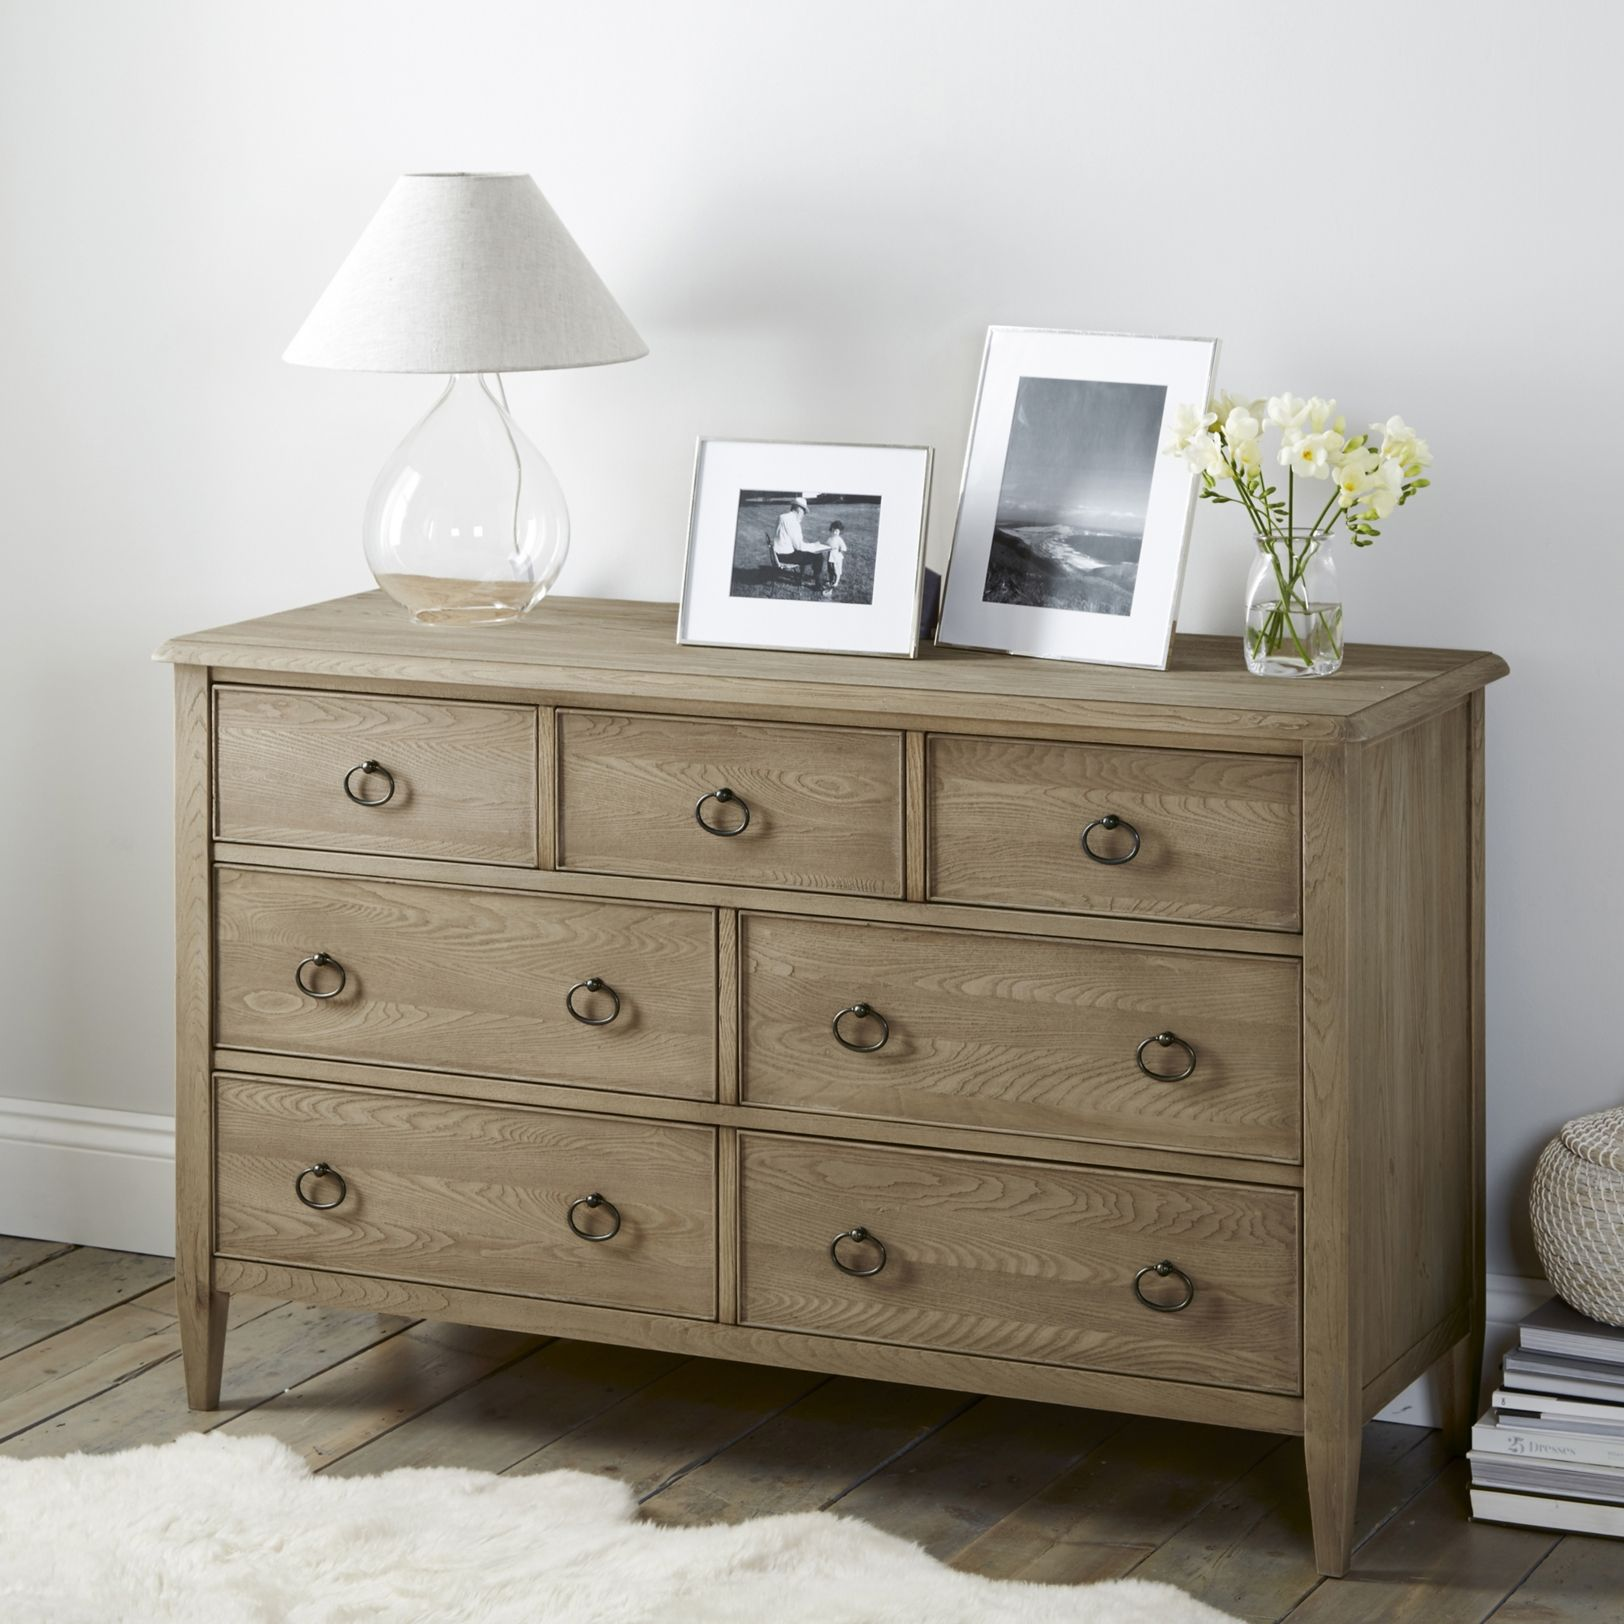 Ardleigh Wide Chest Of Drawers Bedroom Furniture Furniture Home The White Company